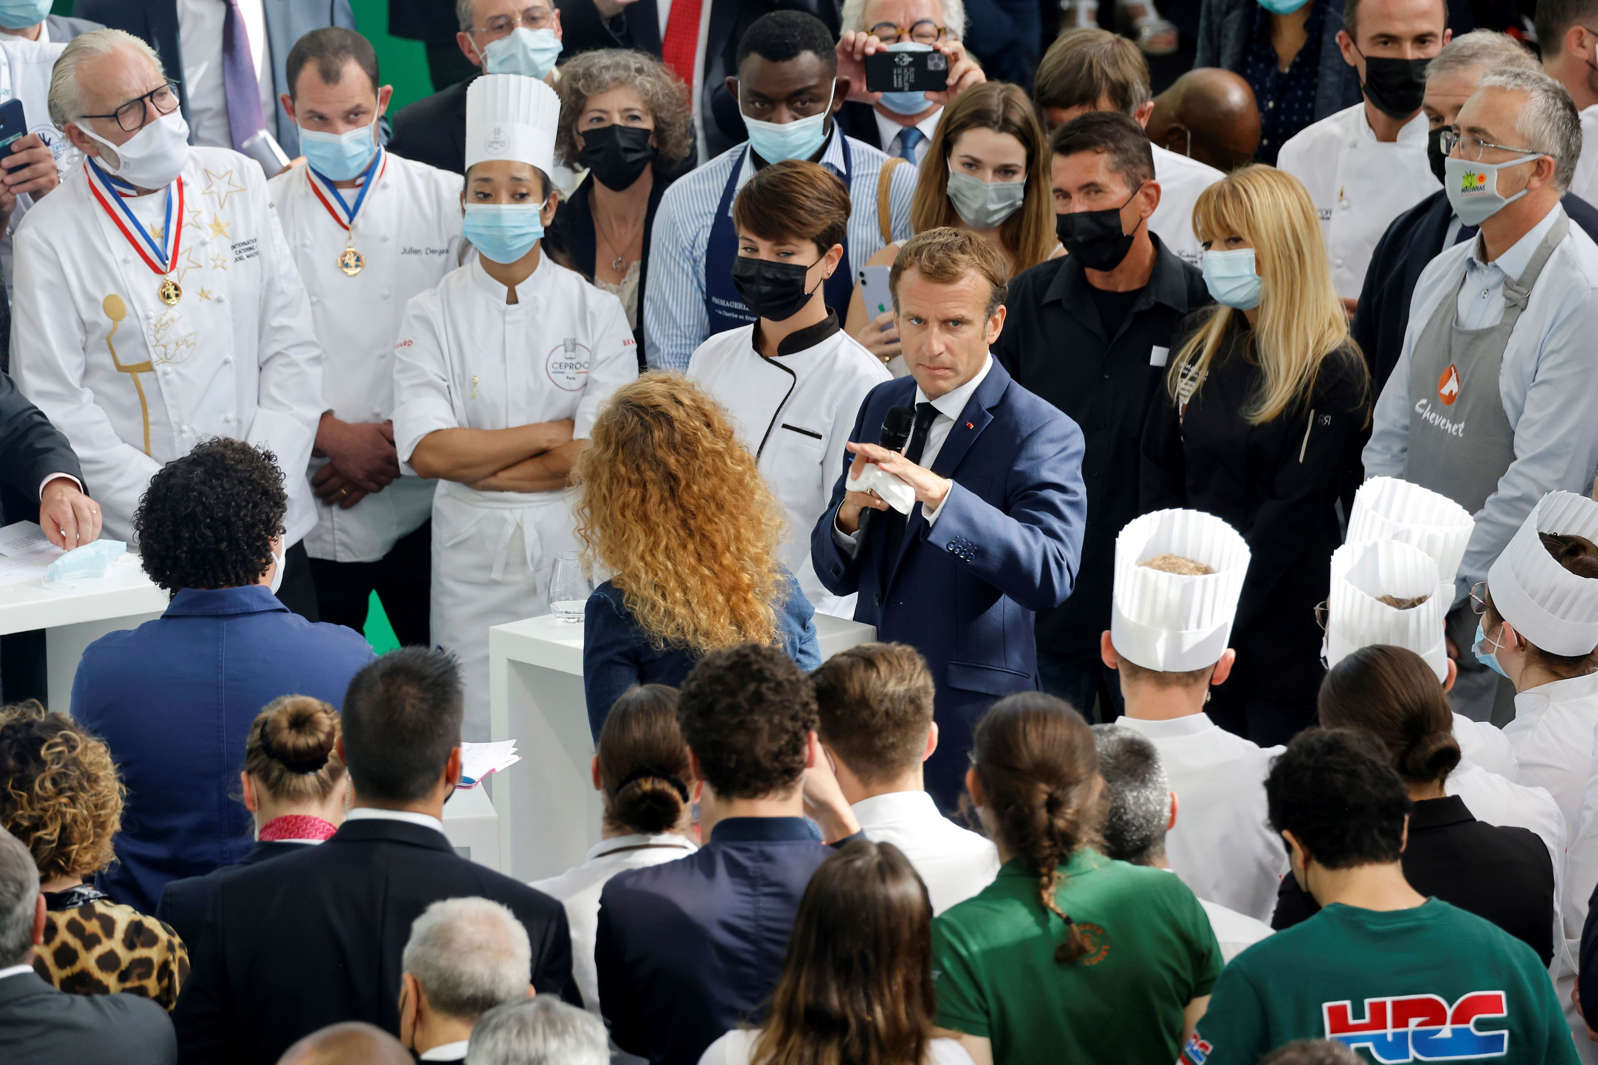 French President Emmanuel Macron was hit by an egg during his visit to Lyon to promote French gastronomy. EPA